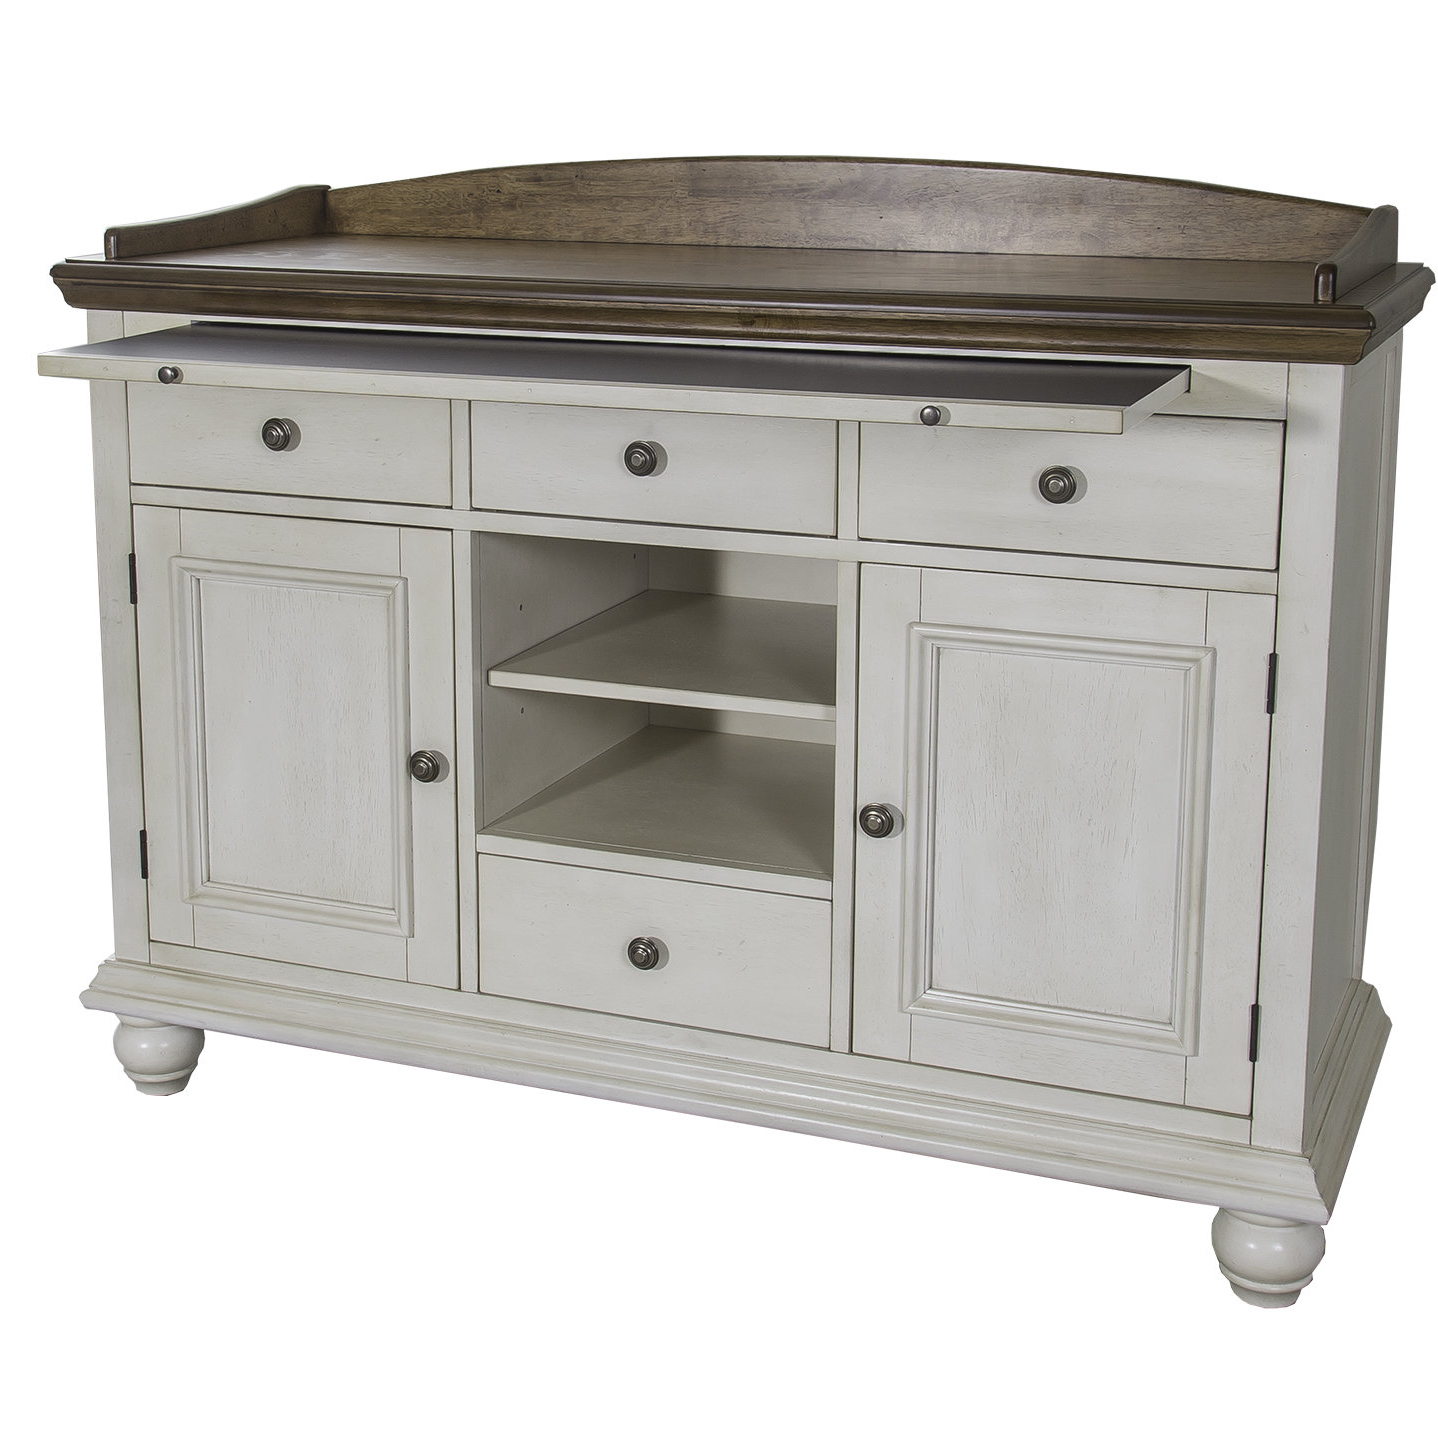 Farmhouse & Rustic Rubberwood Sideboards & Buffets (View 12 of 20)